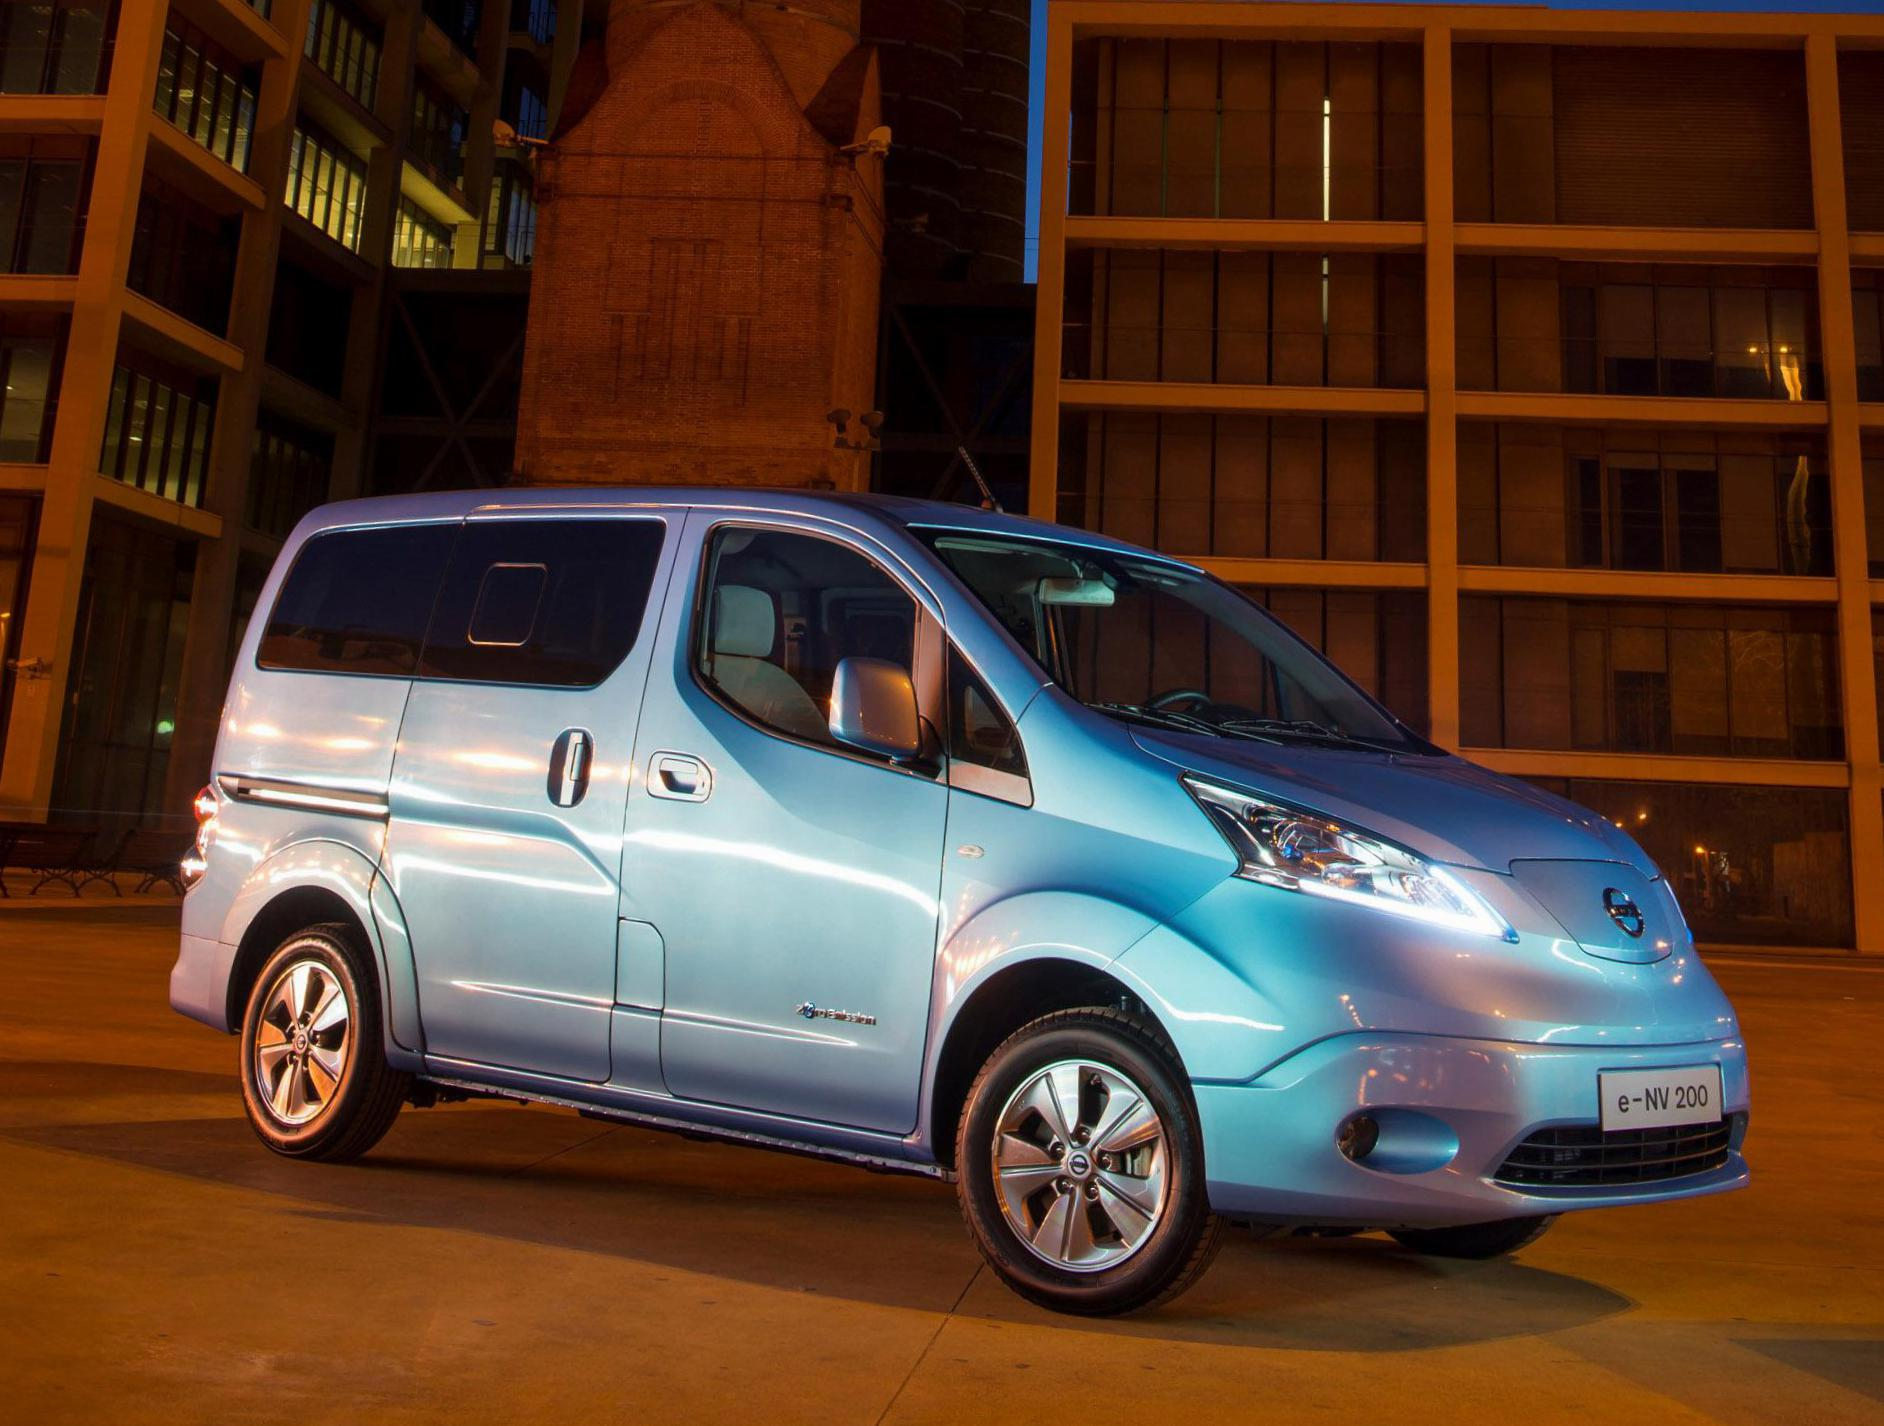 e-NV200 Nissan spec pickup